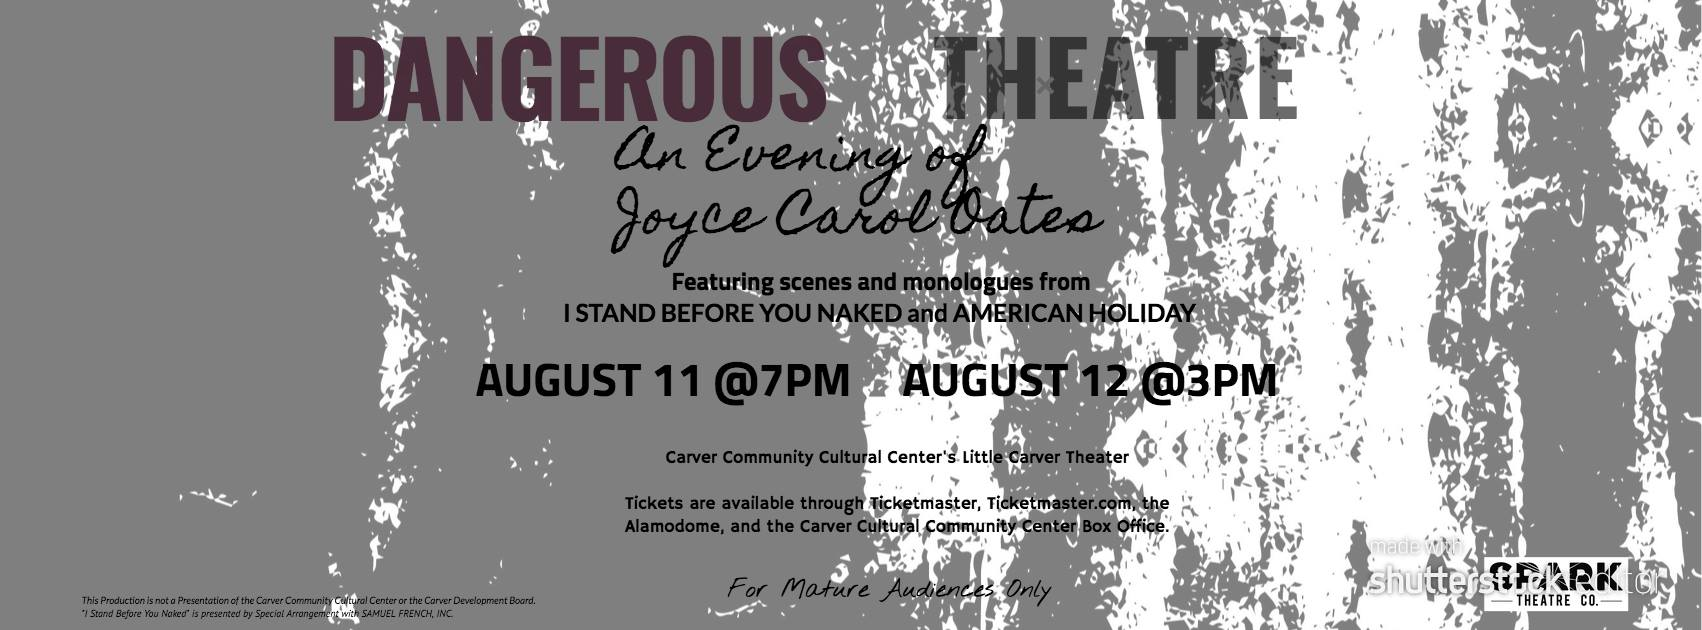 Dangerous Theatre: An Evening of Joyce Carol Oates by Spark Theatre Company